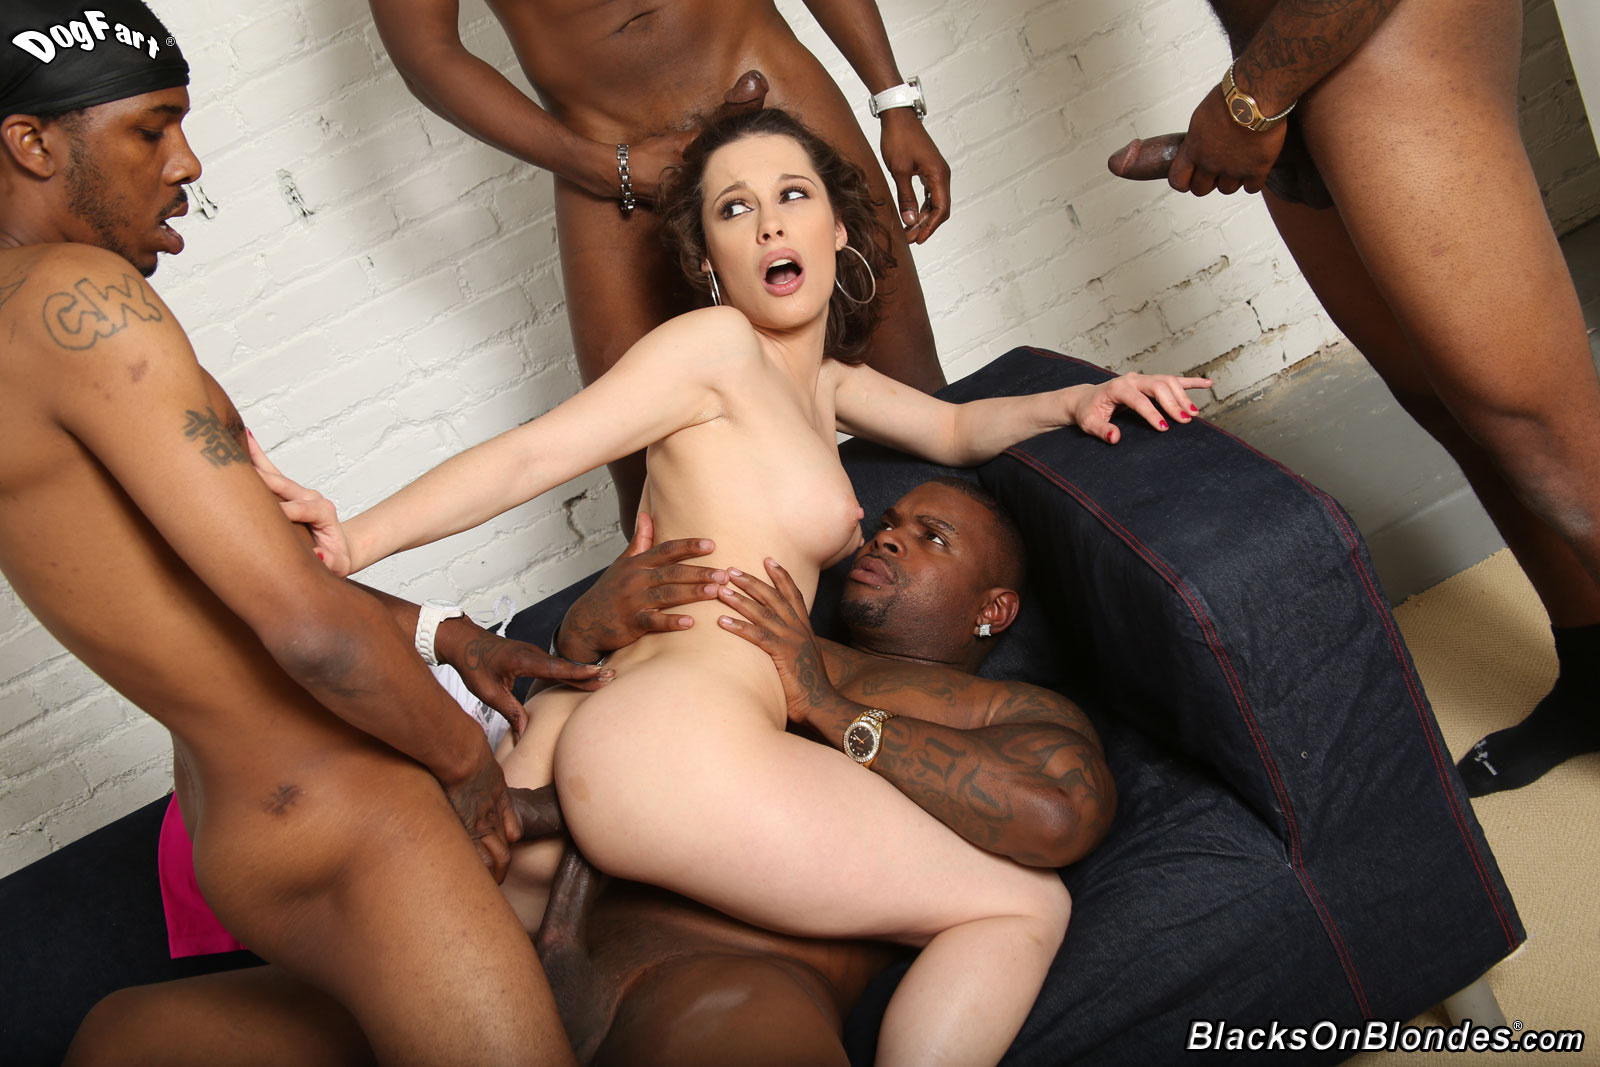 Interracial gangbangs blonds on blacks